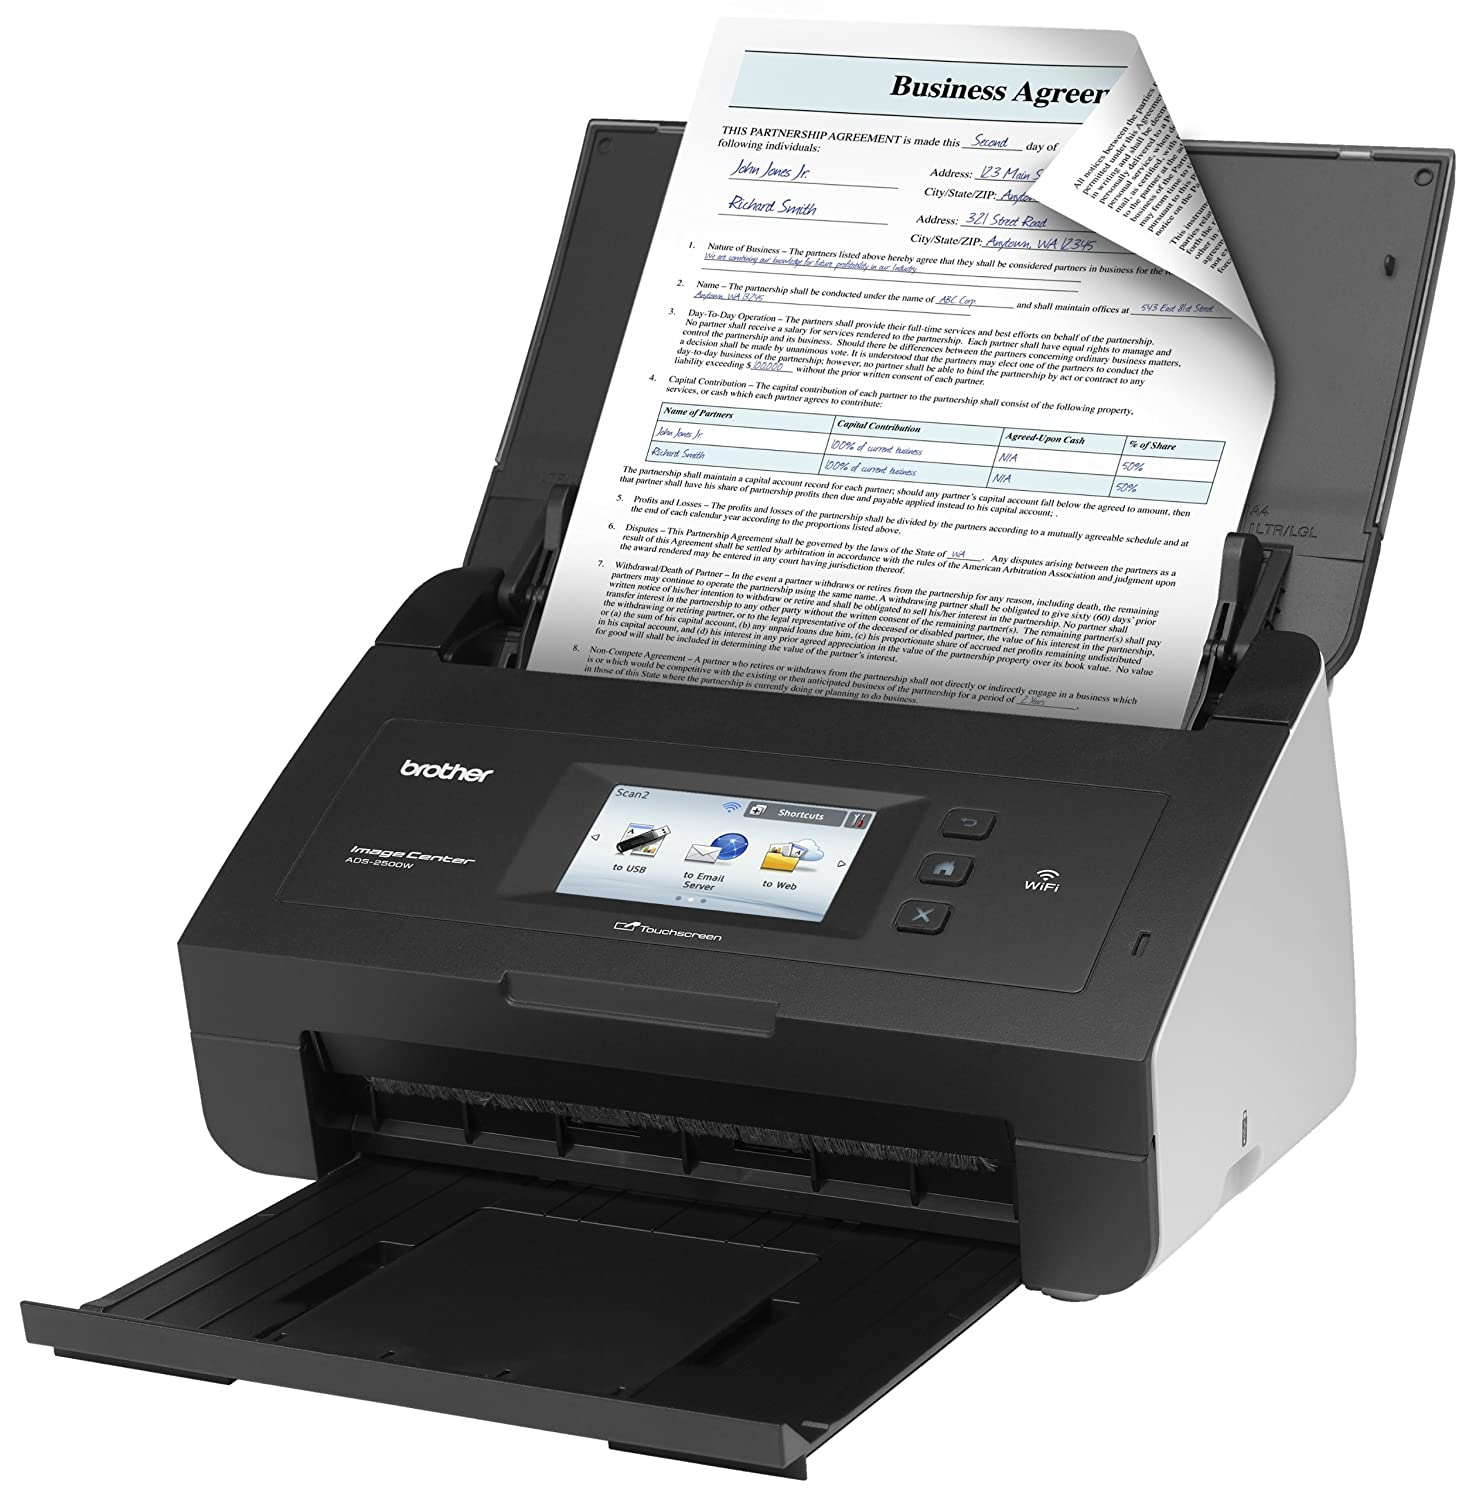 brother ads2500w document scanner electronics